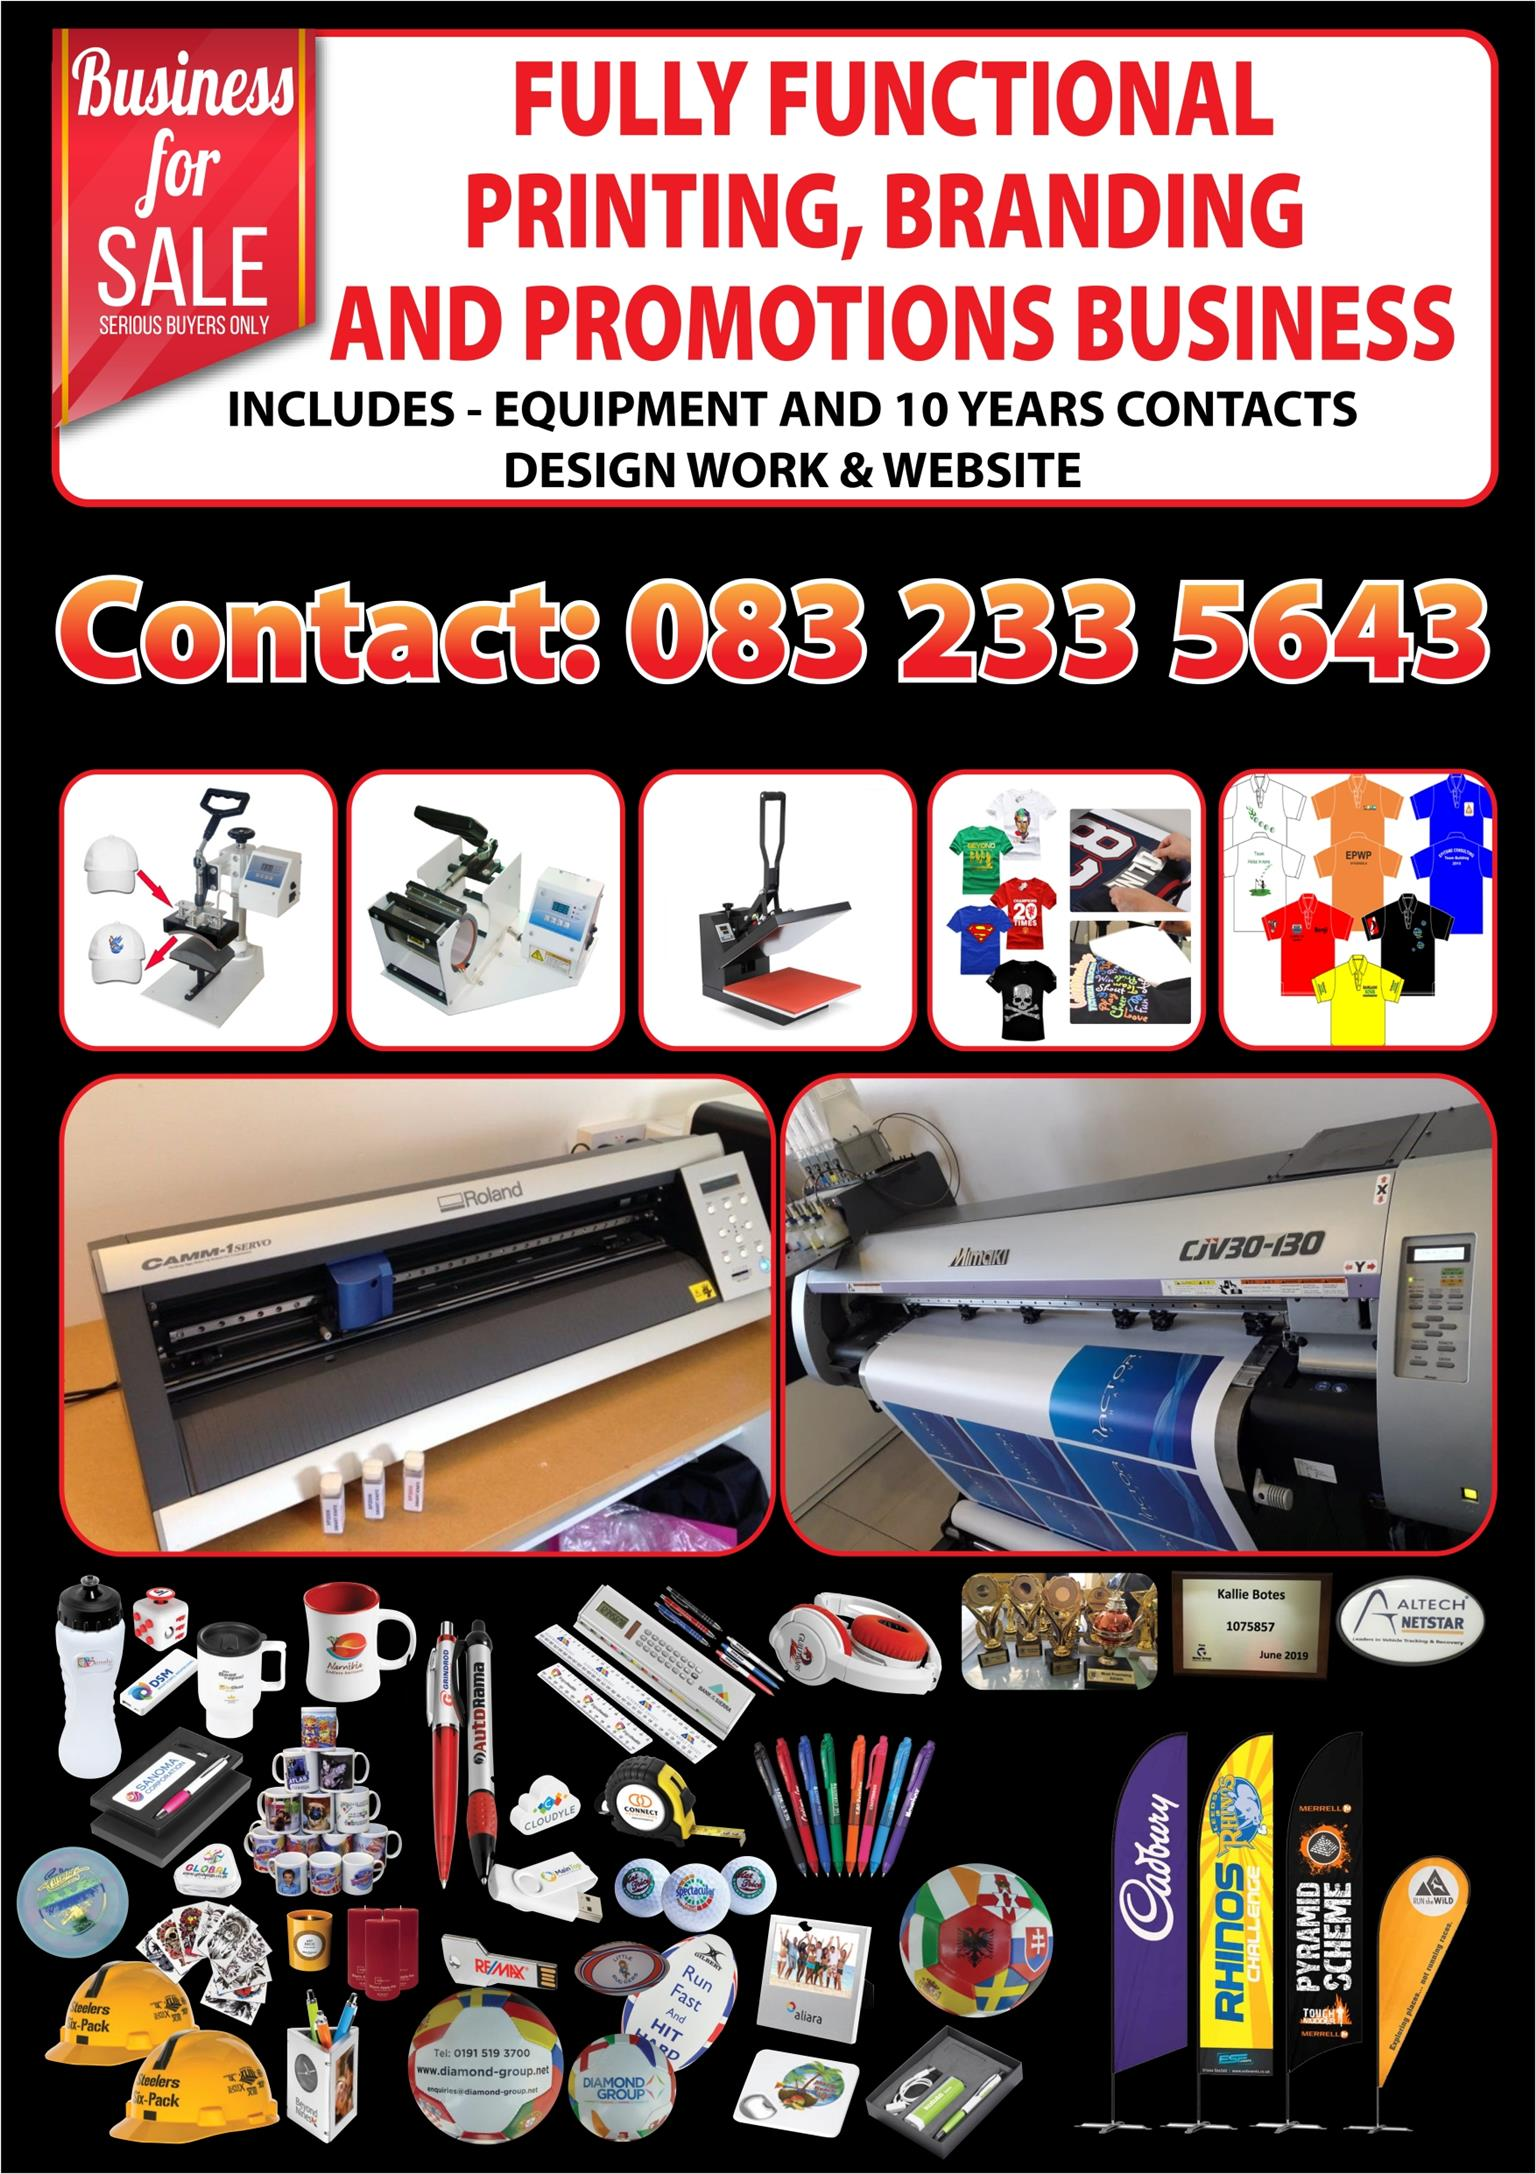 Printing, Promotional and Branding Business for Sale